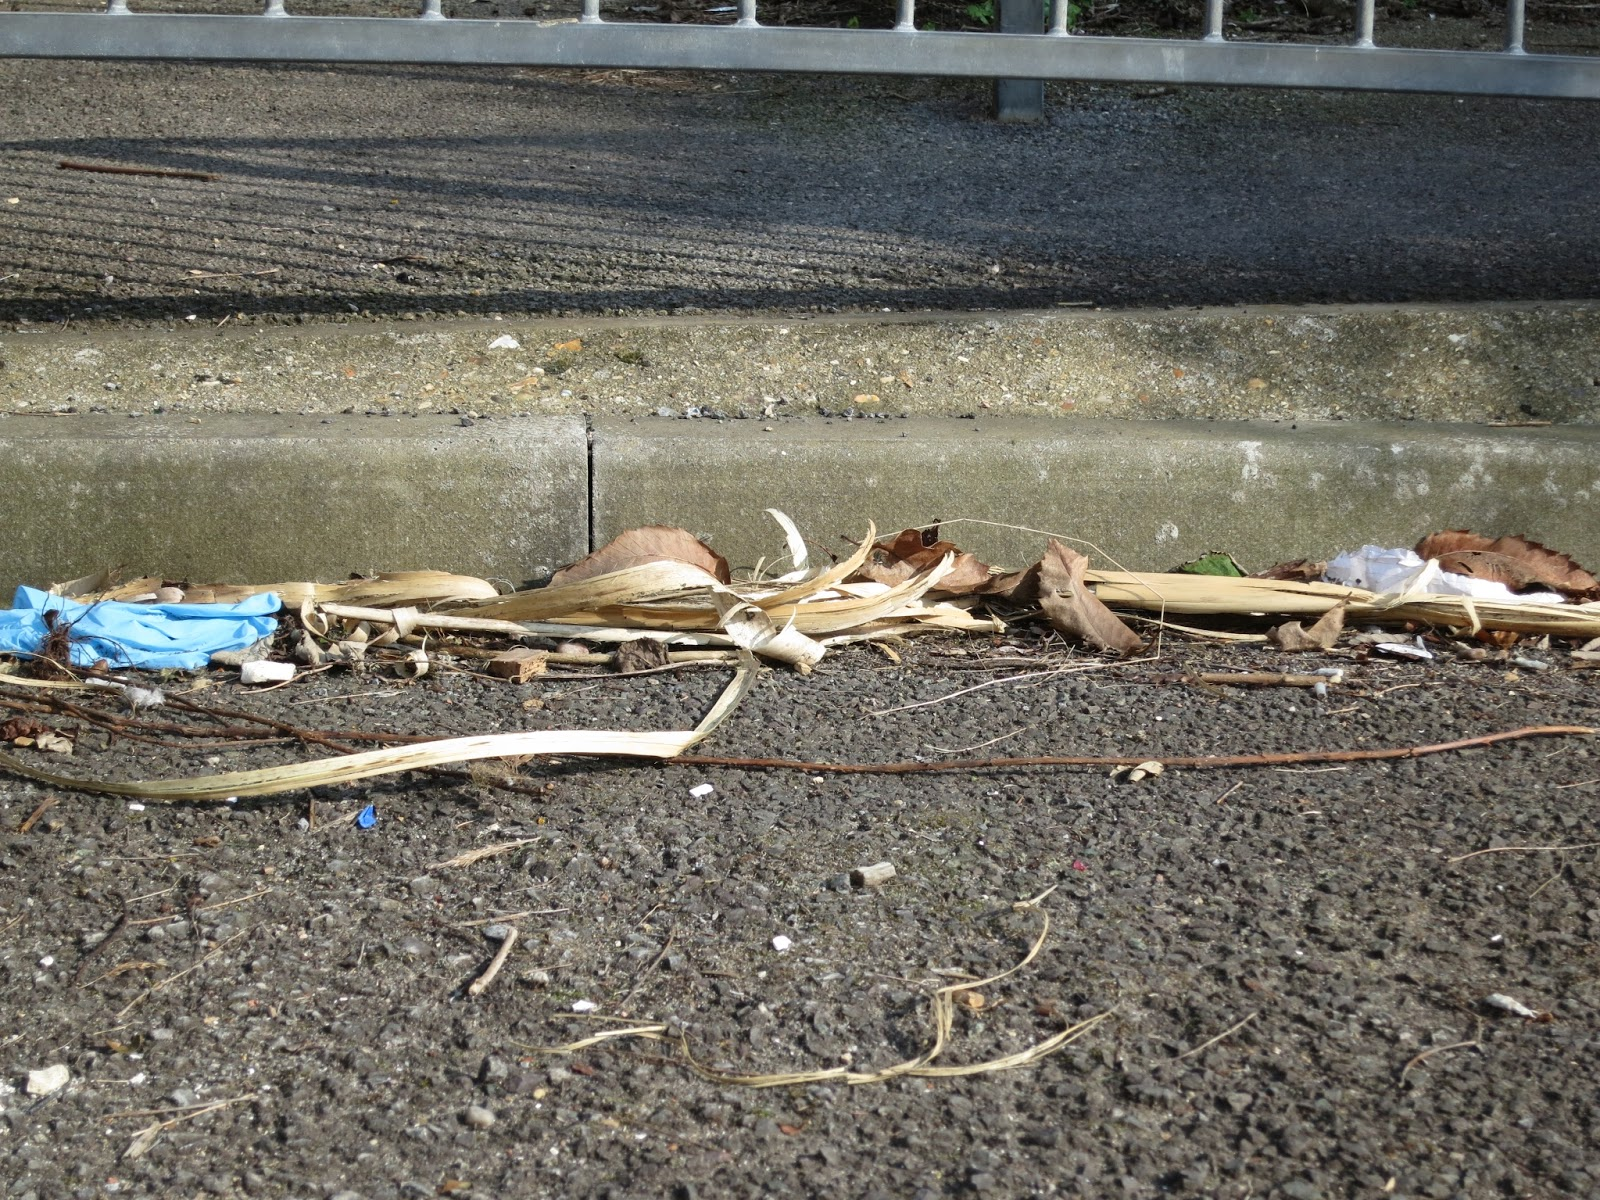 Leaves and other debris in kerb by railings with shadow